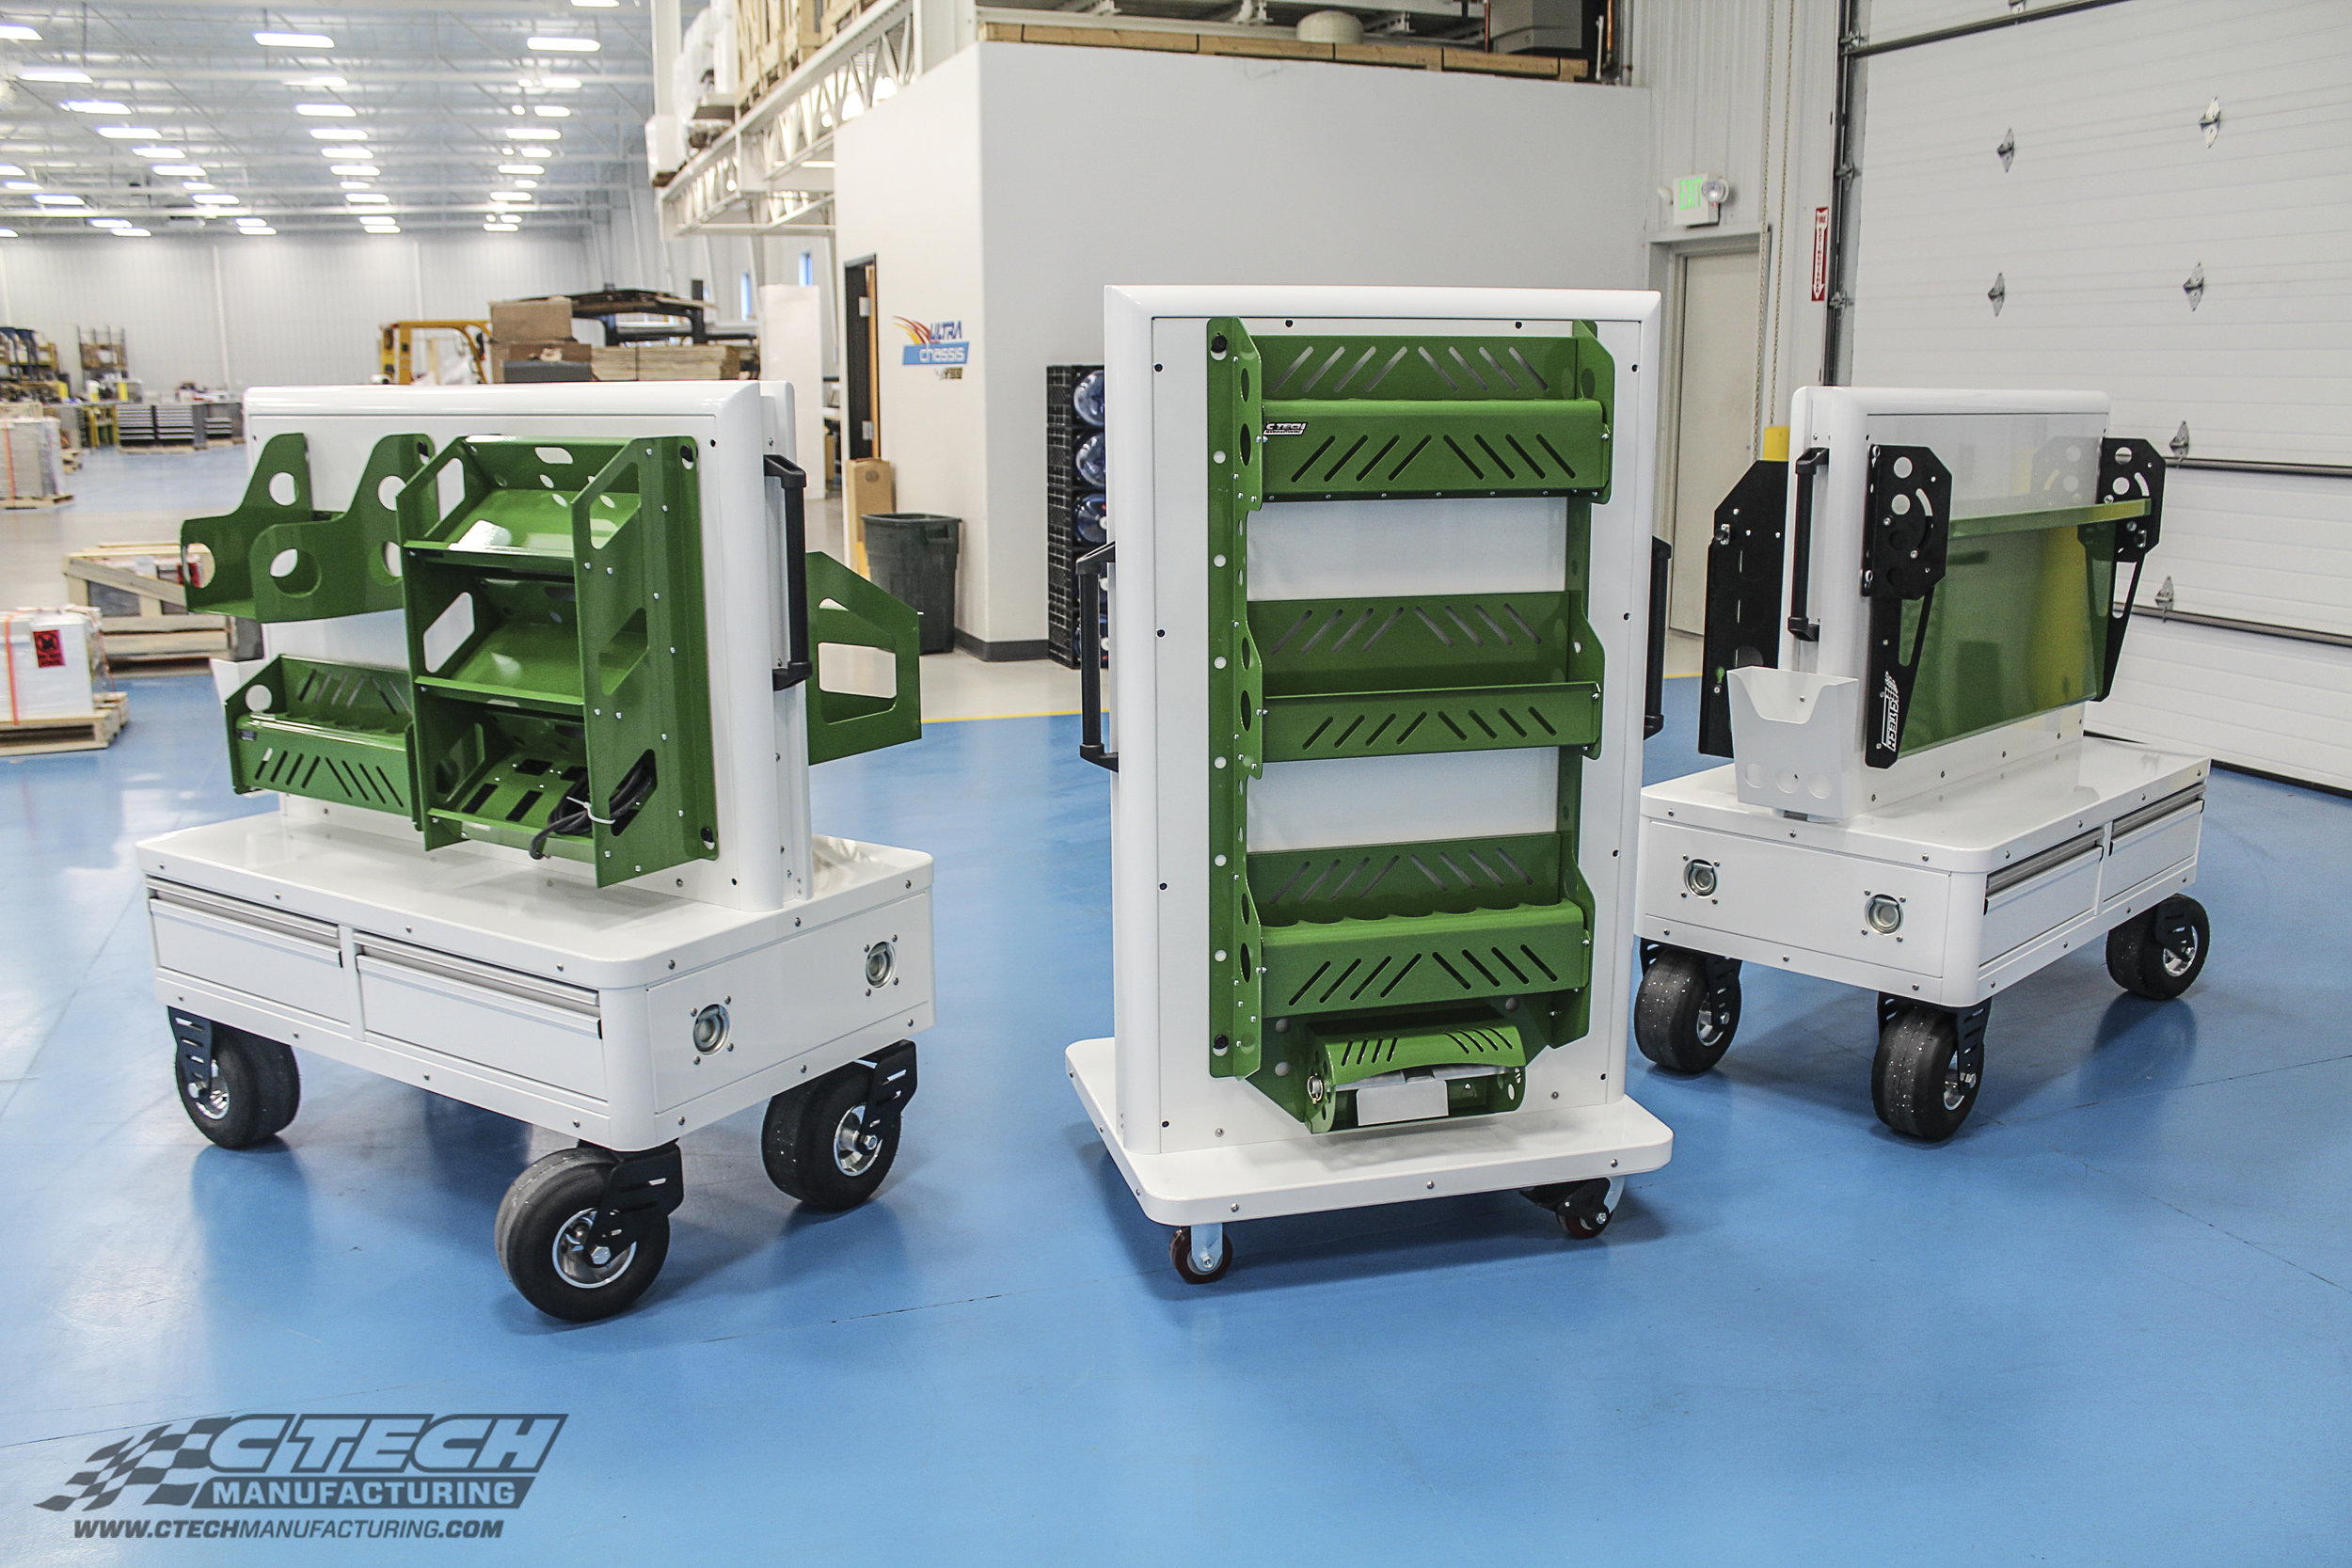 CTECH Display Carts and Blackline Accessories